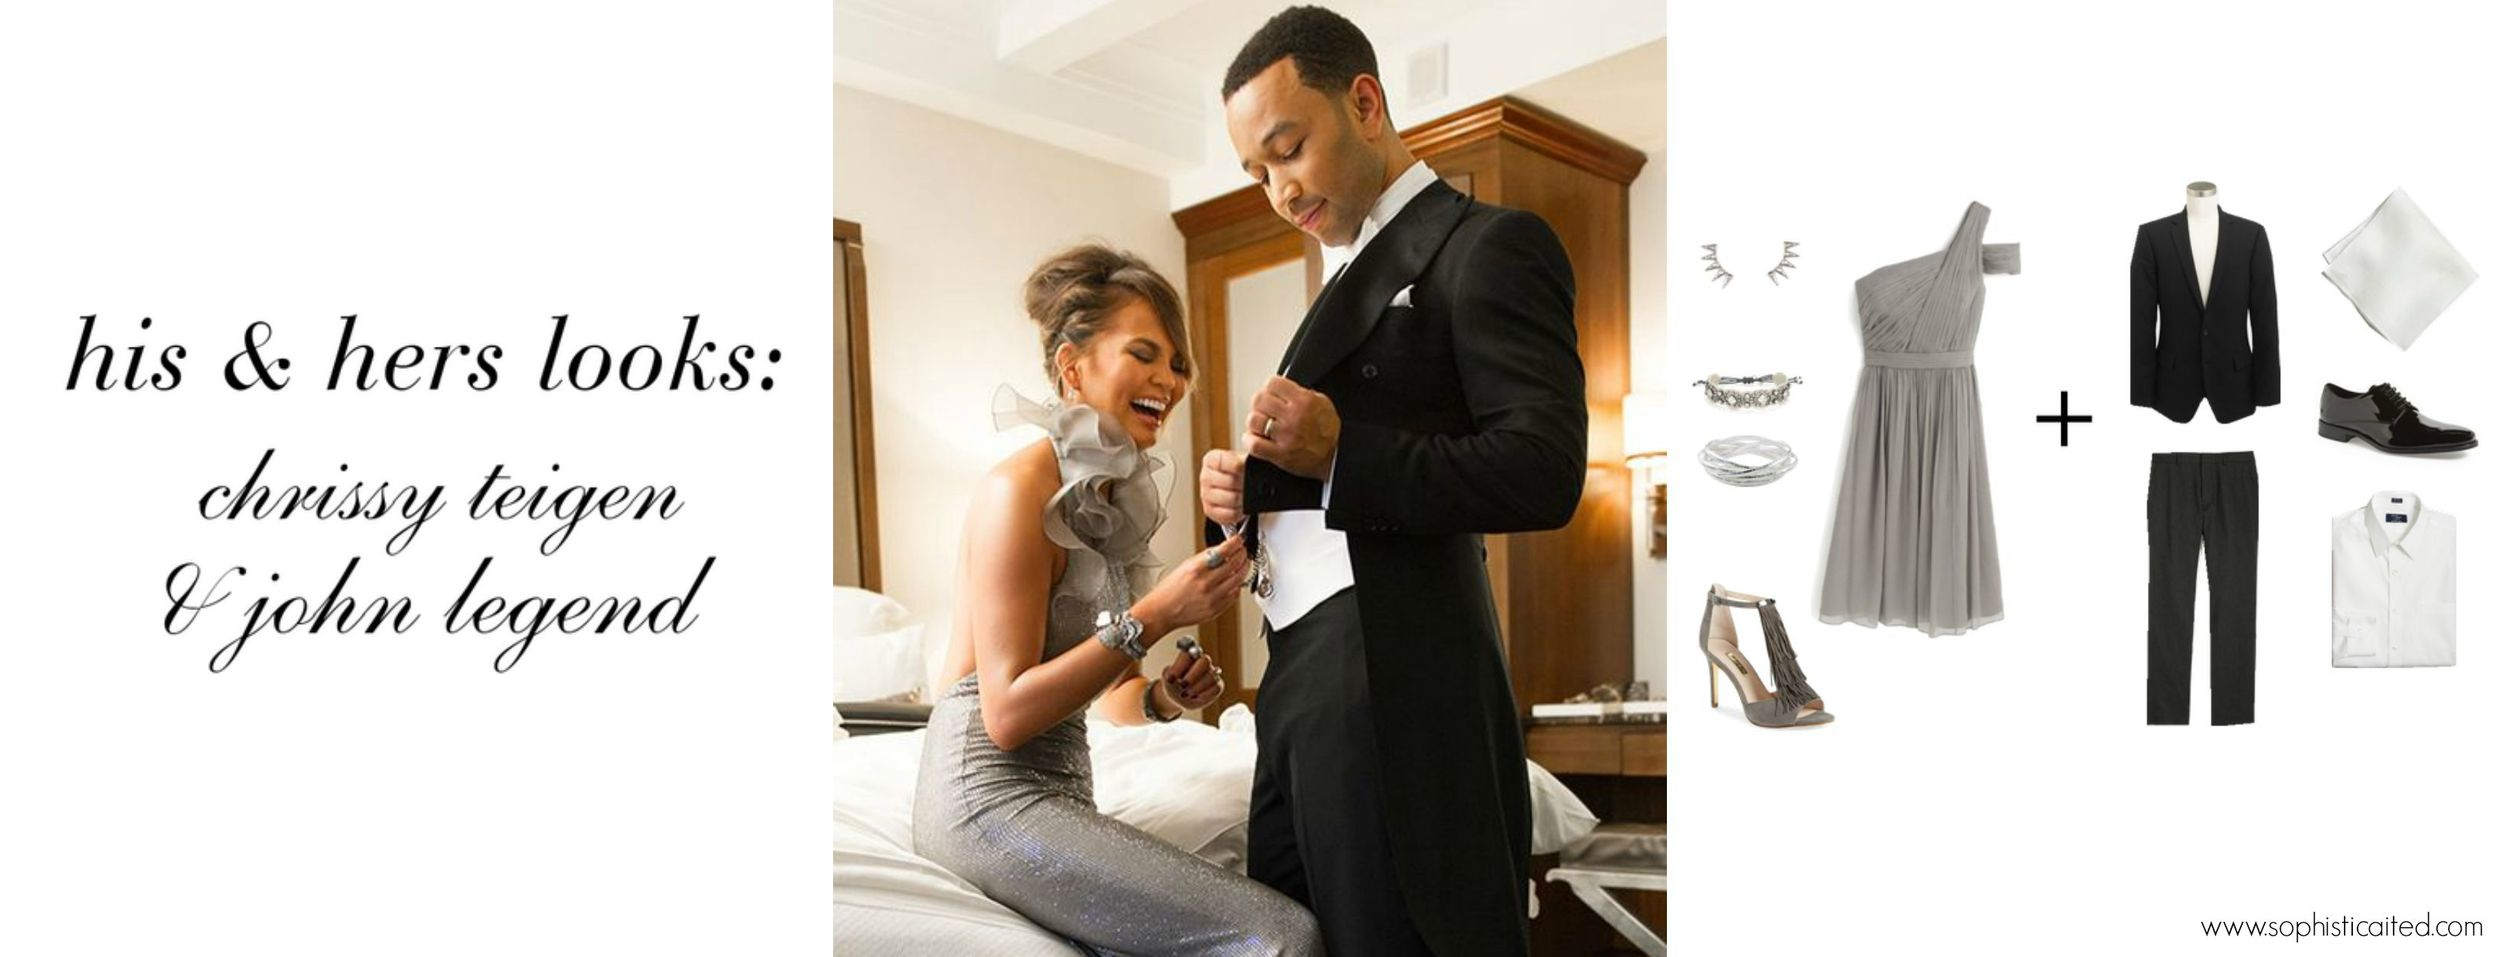 Couples outfit on Sophisticaited.com